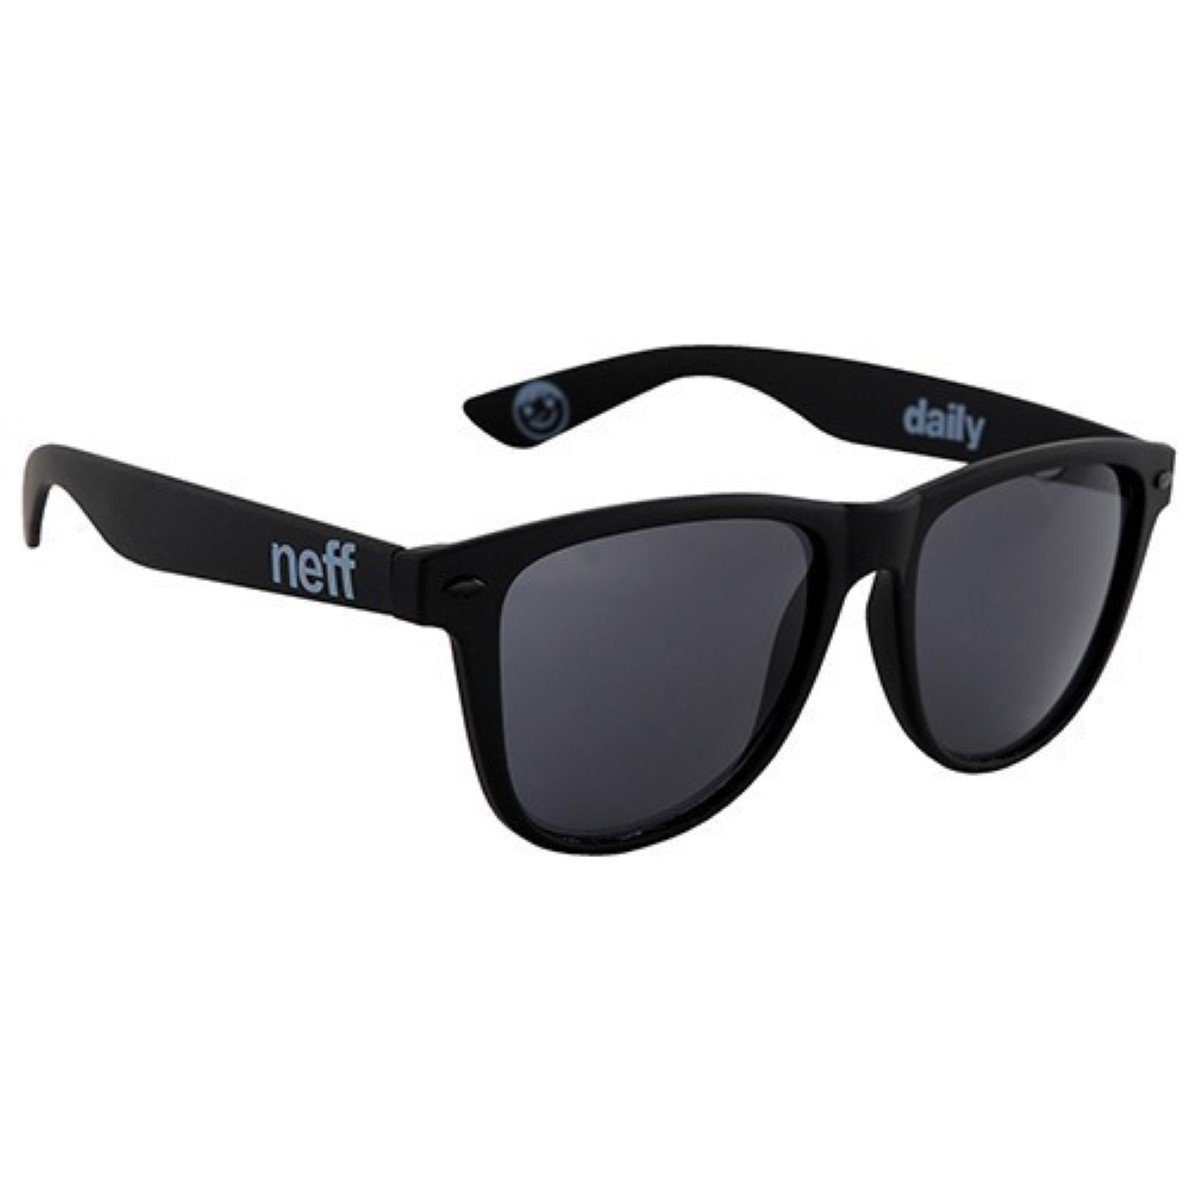 NEFF Daily Shades Rectangular Sunglasses, Tropical Jungle, 6 mm by NEFF